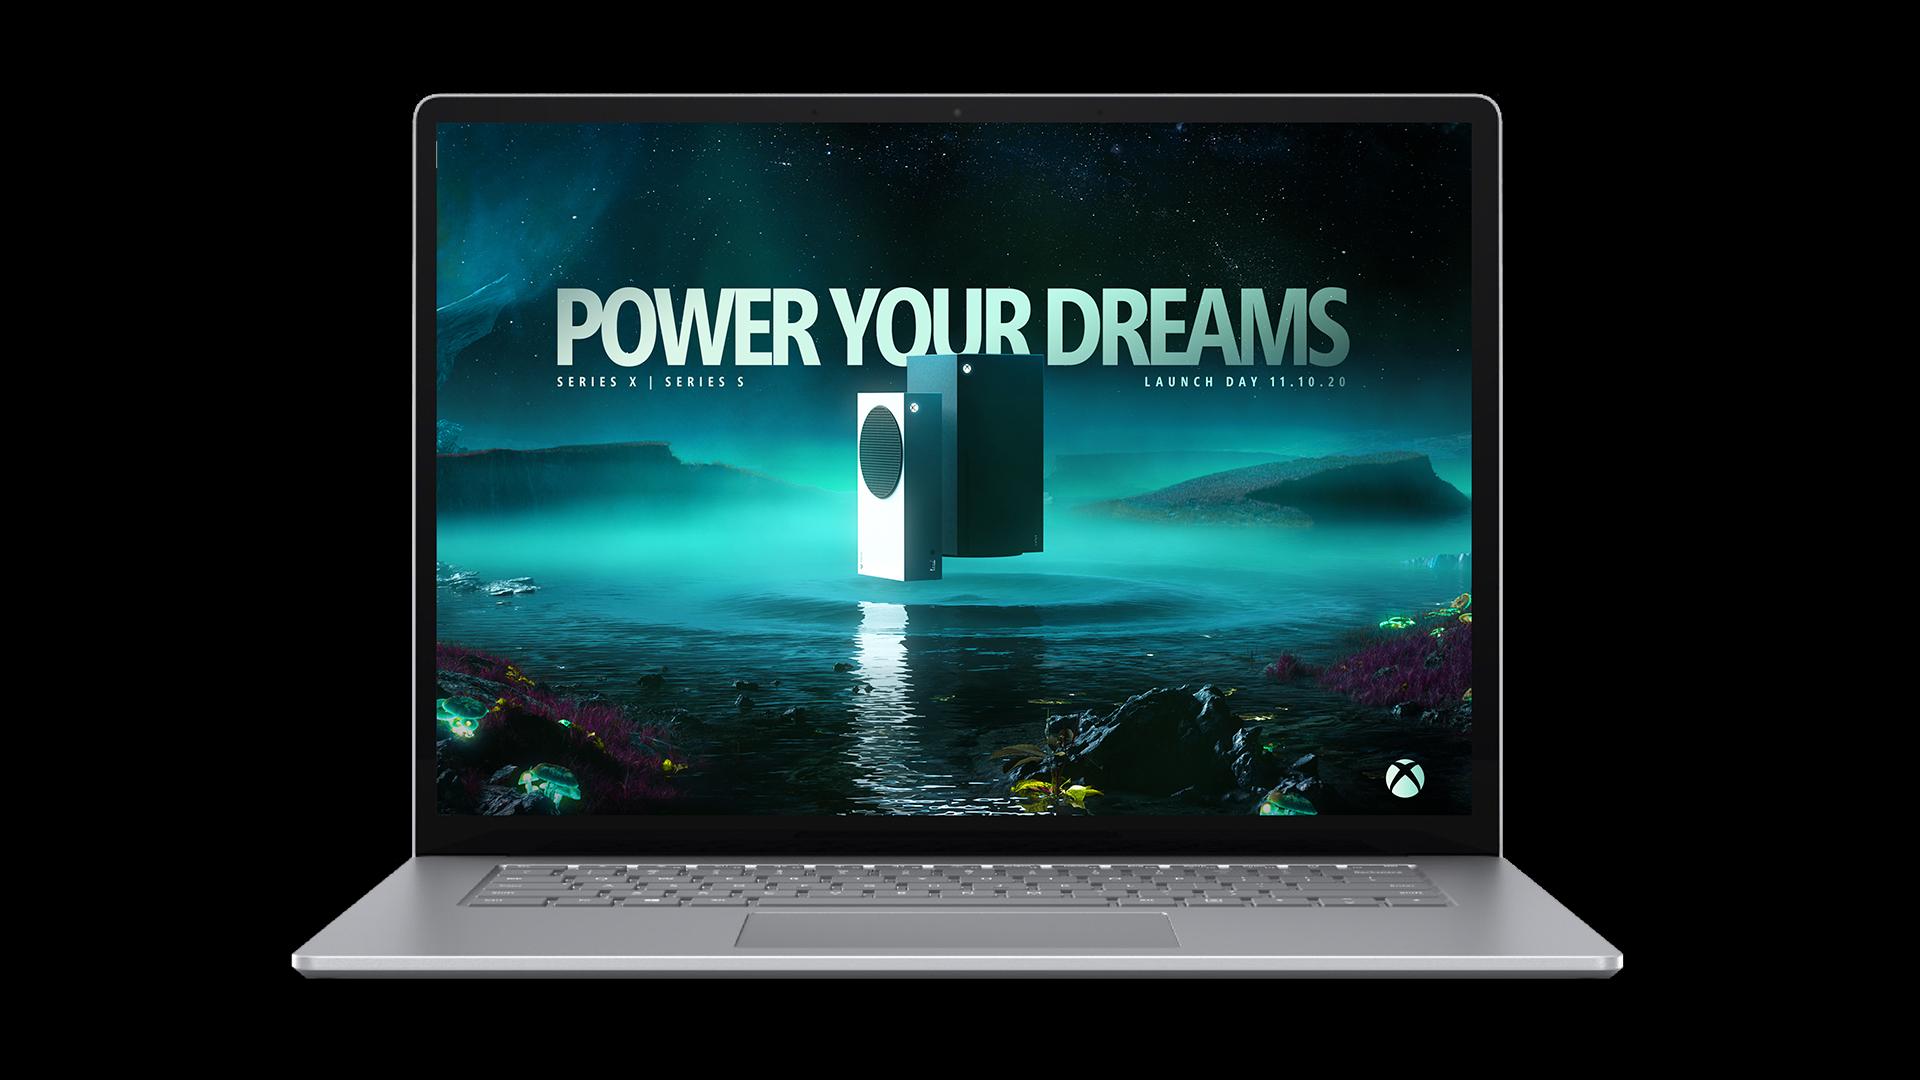 A laptop with a Launch Day background on it